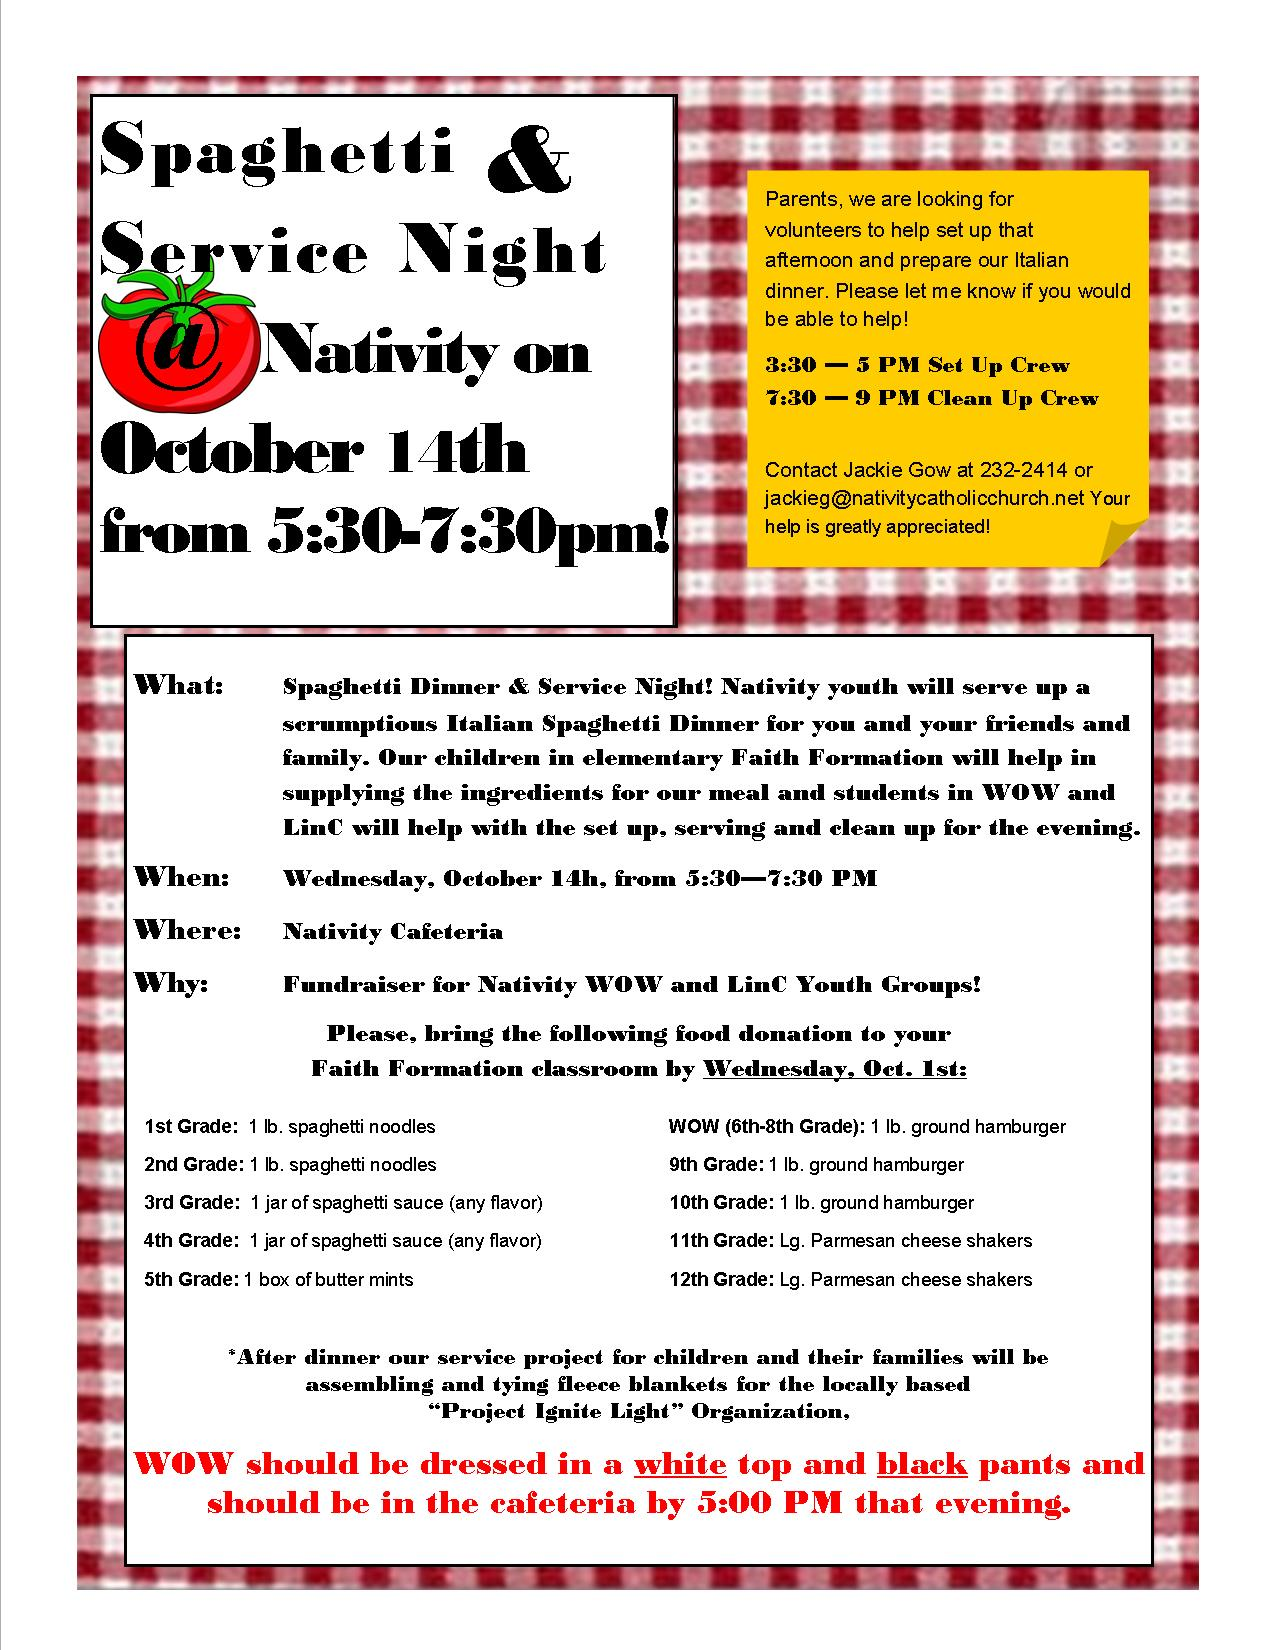 Spaghetti Dinner Flyer 9.2.15